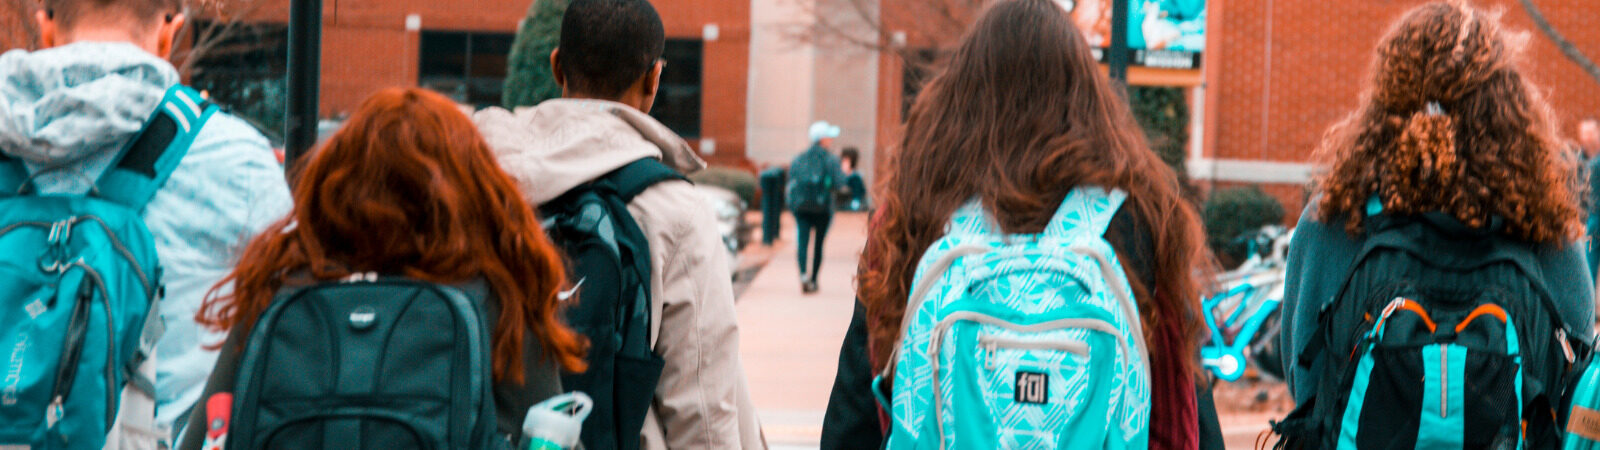 Students walking into school, image from behind so you can only see back of their heads and backpacks